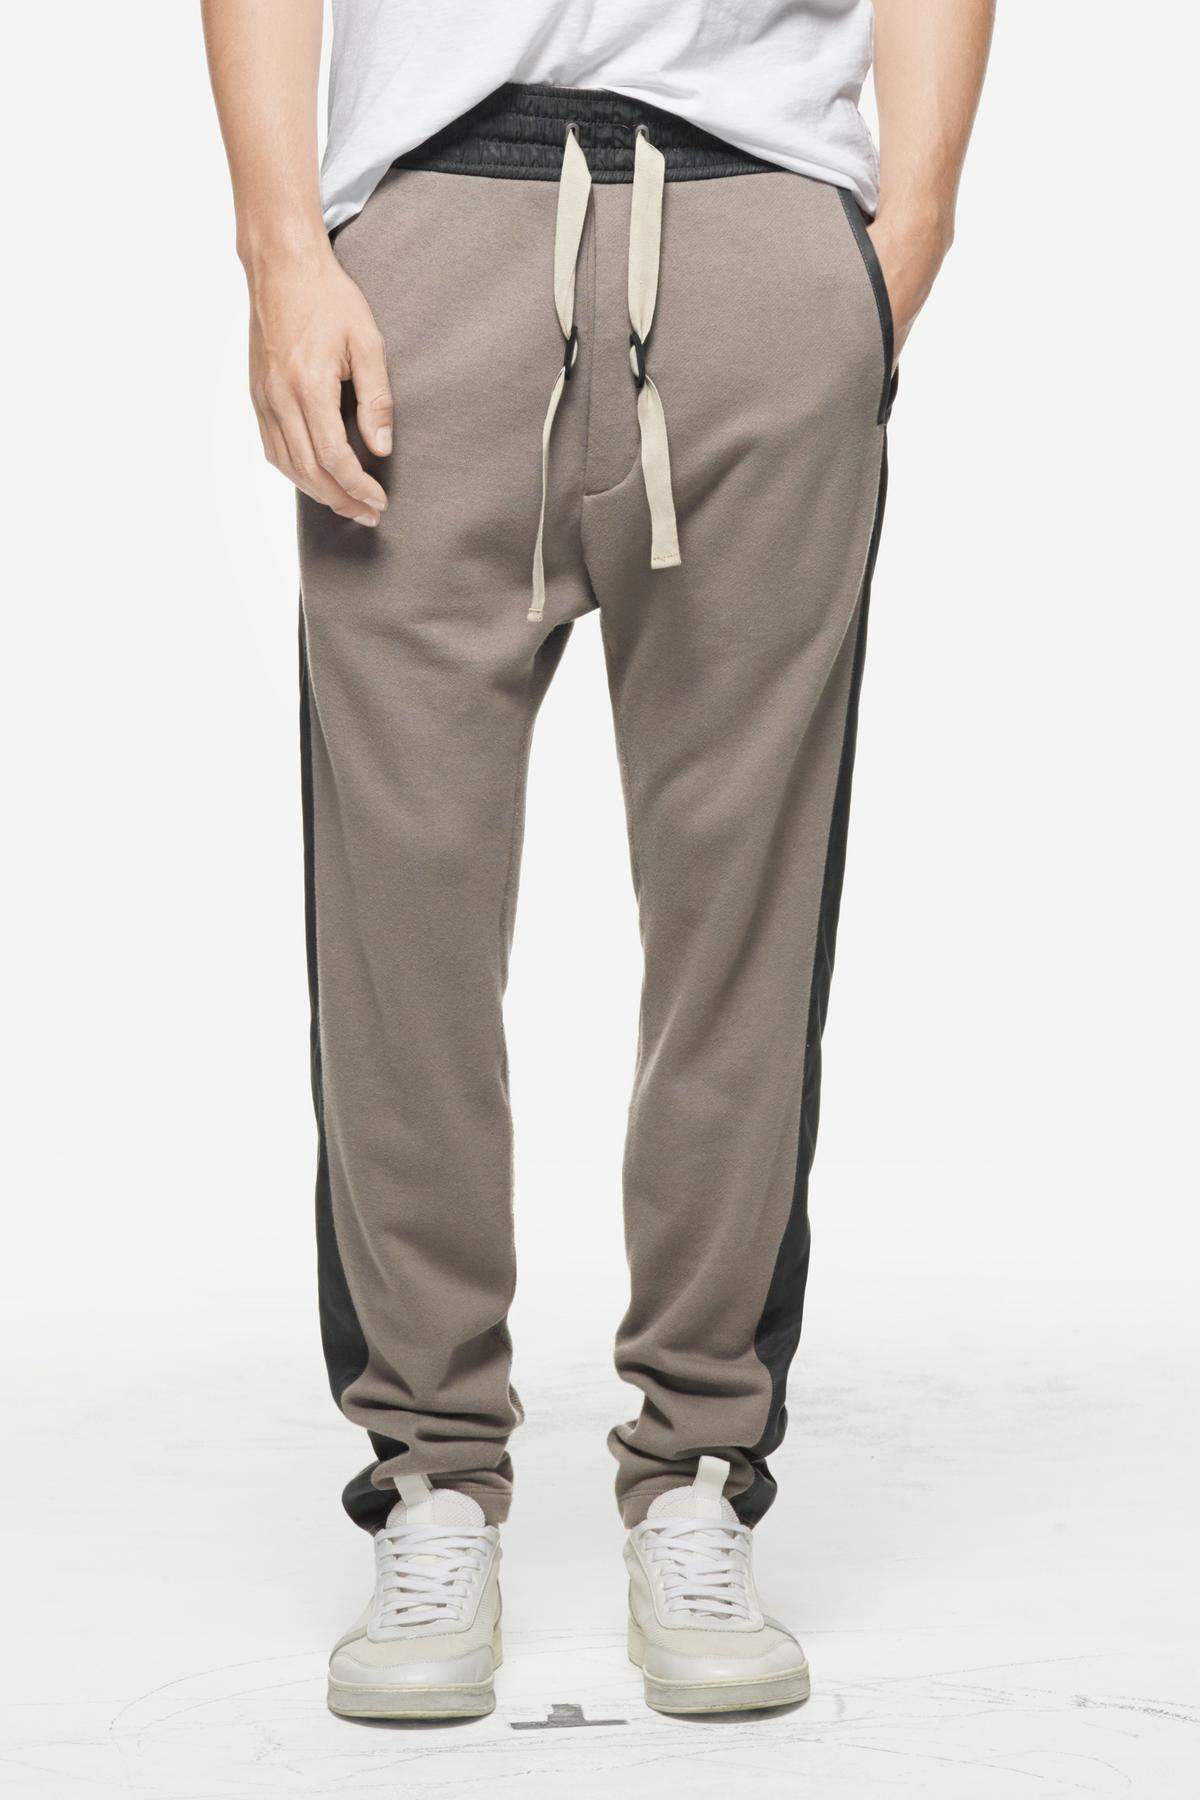 RAG & BONE KNOX TRAINING PANT